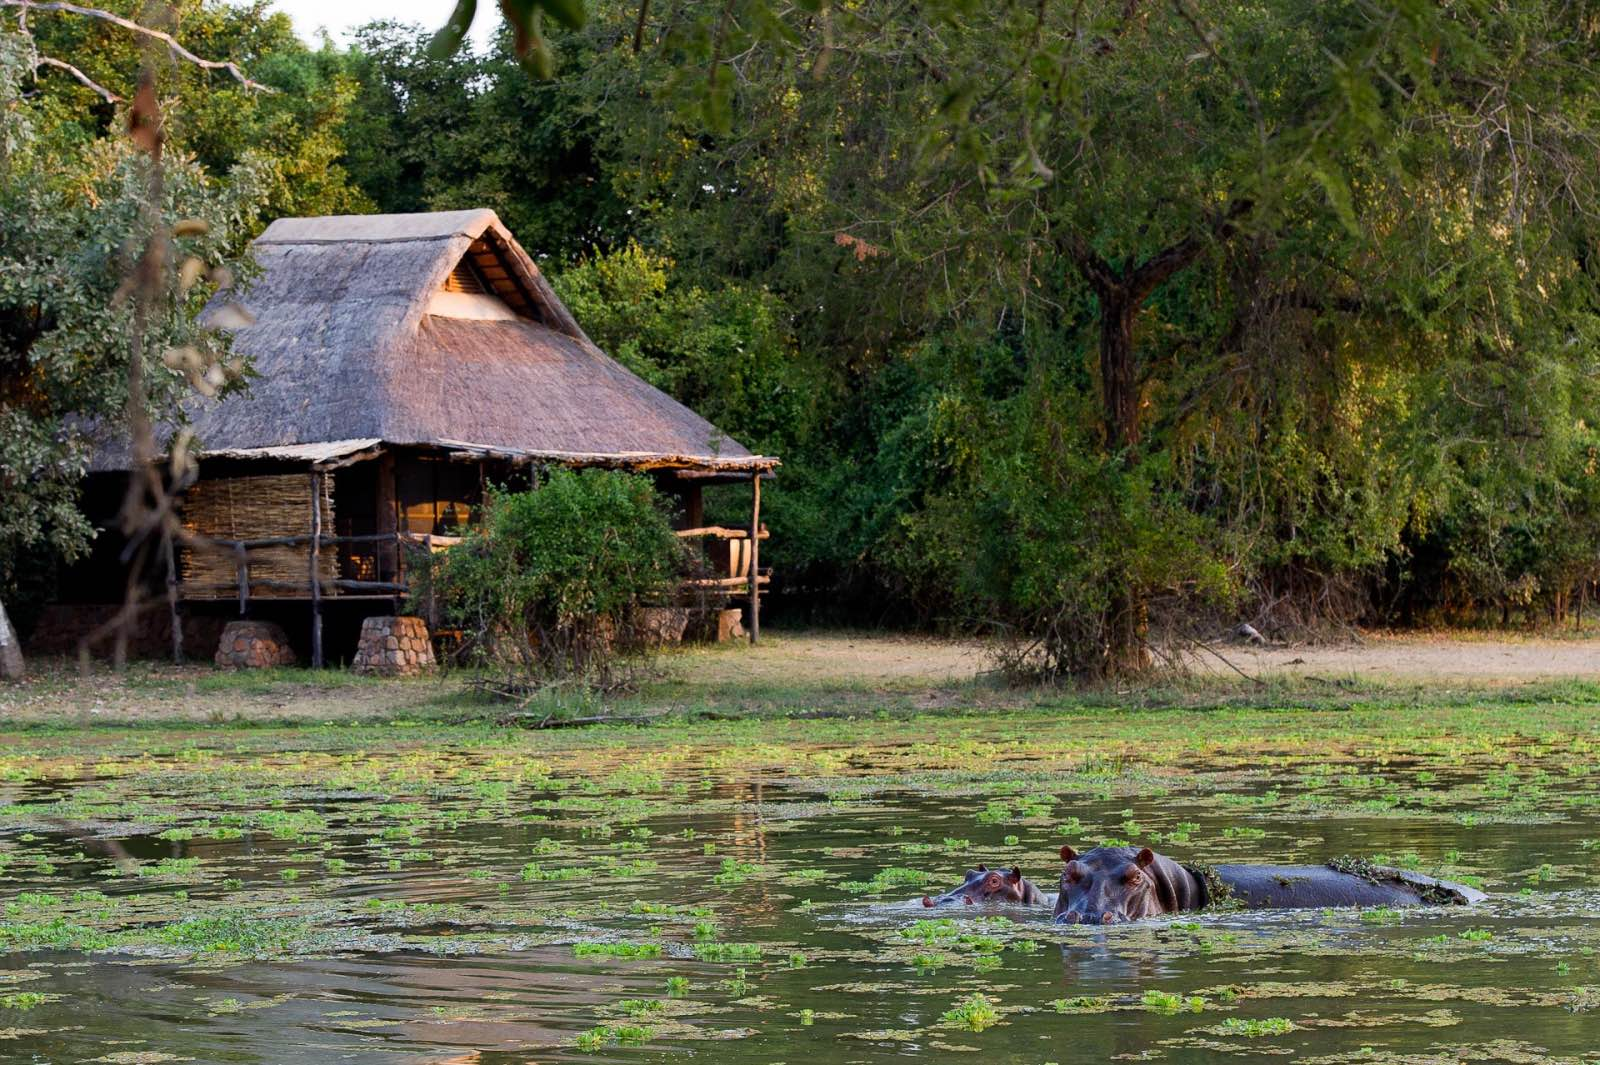 Stilted thatched chalets overlook the swamp, which is frequently visited by wildlife and birds